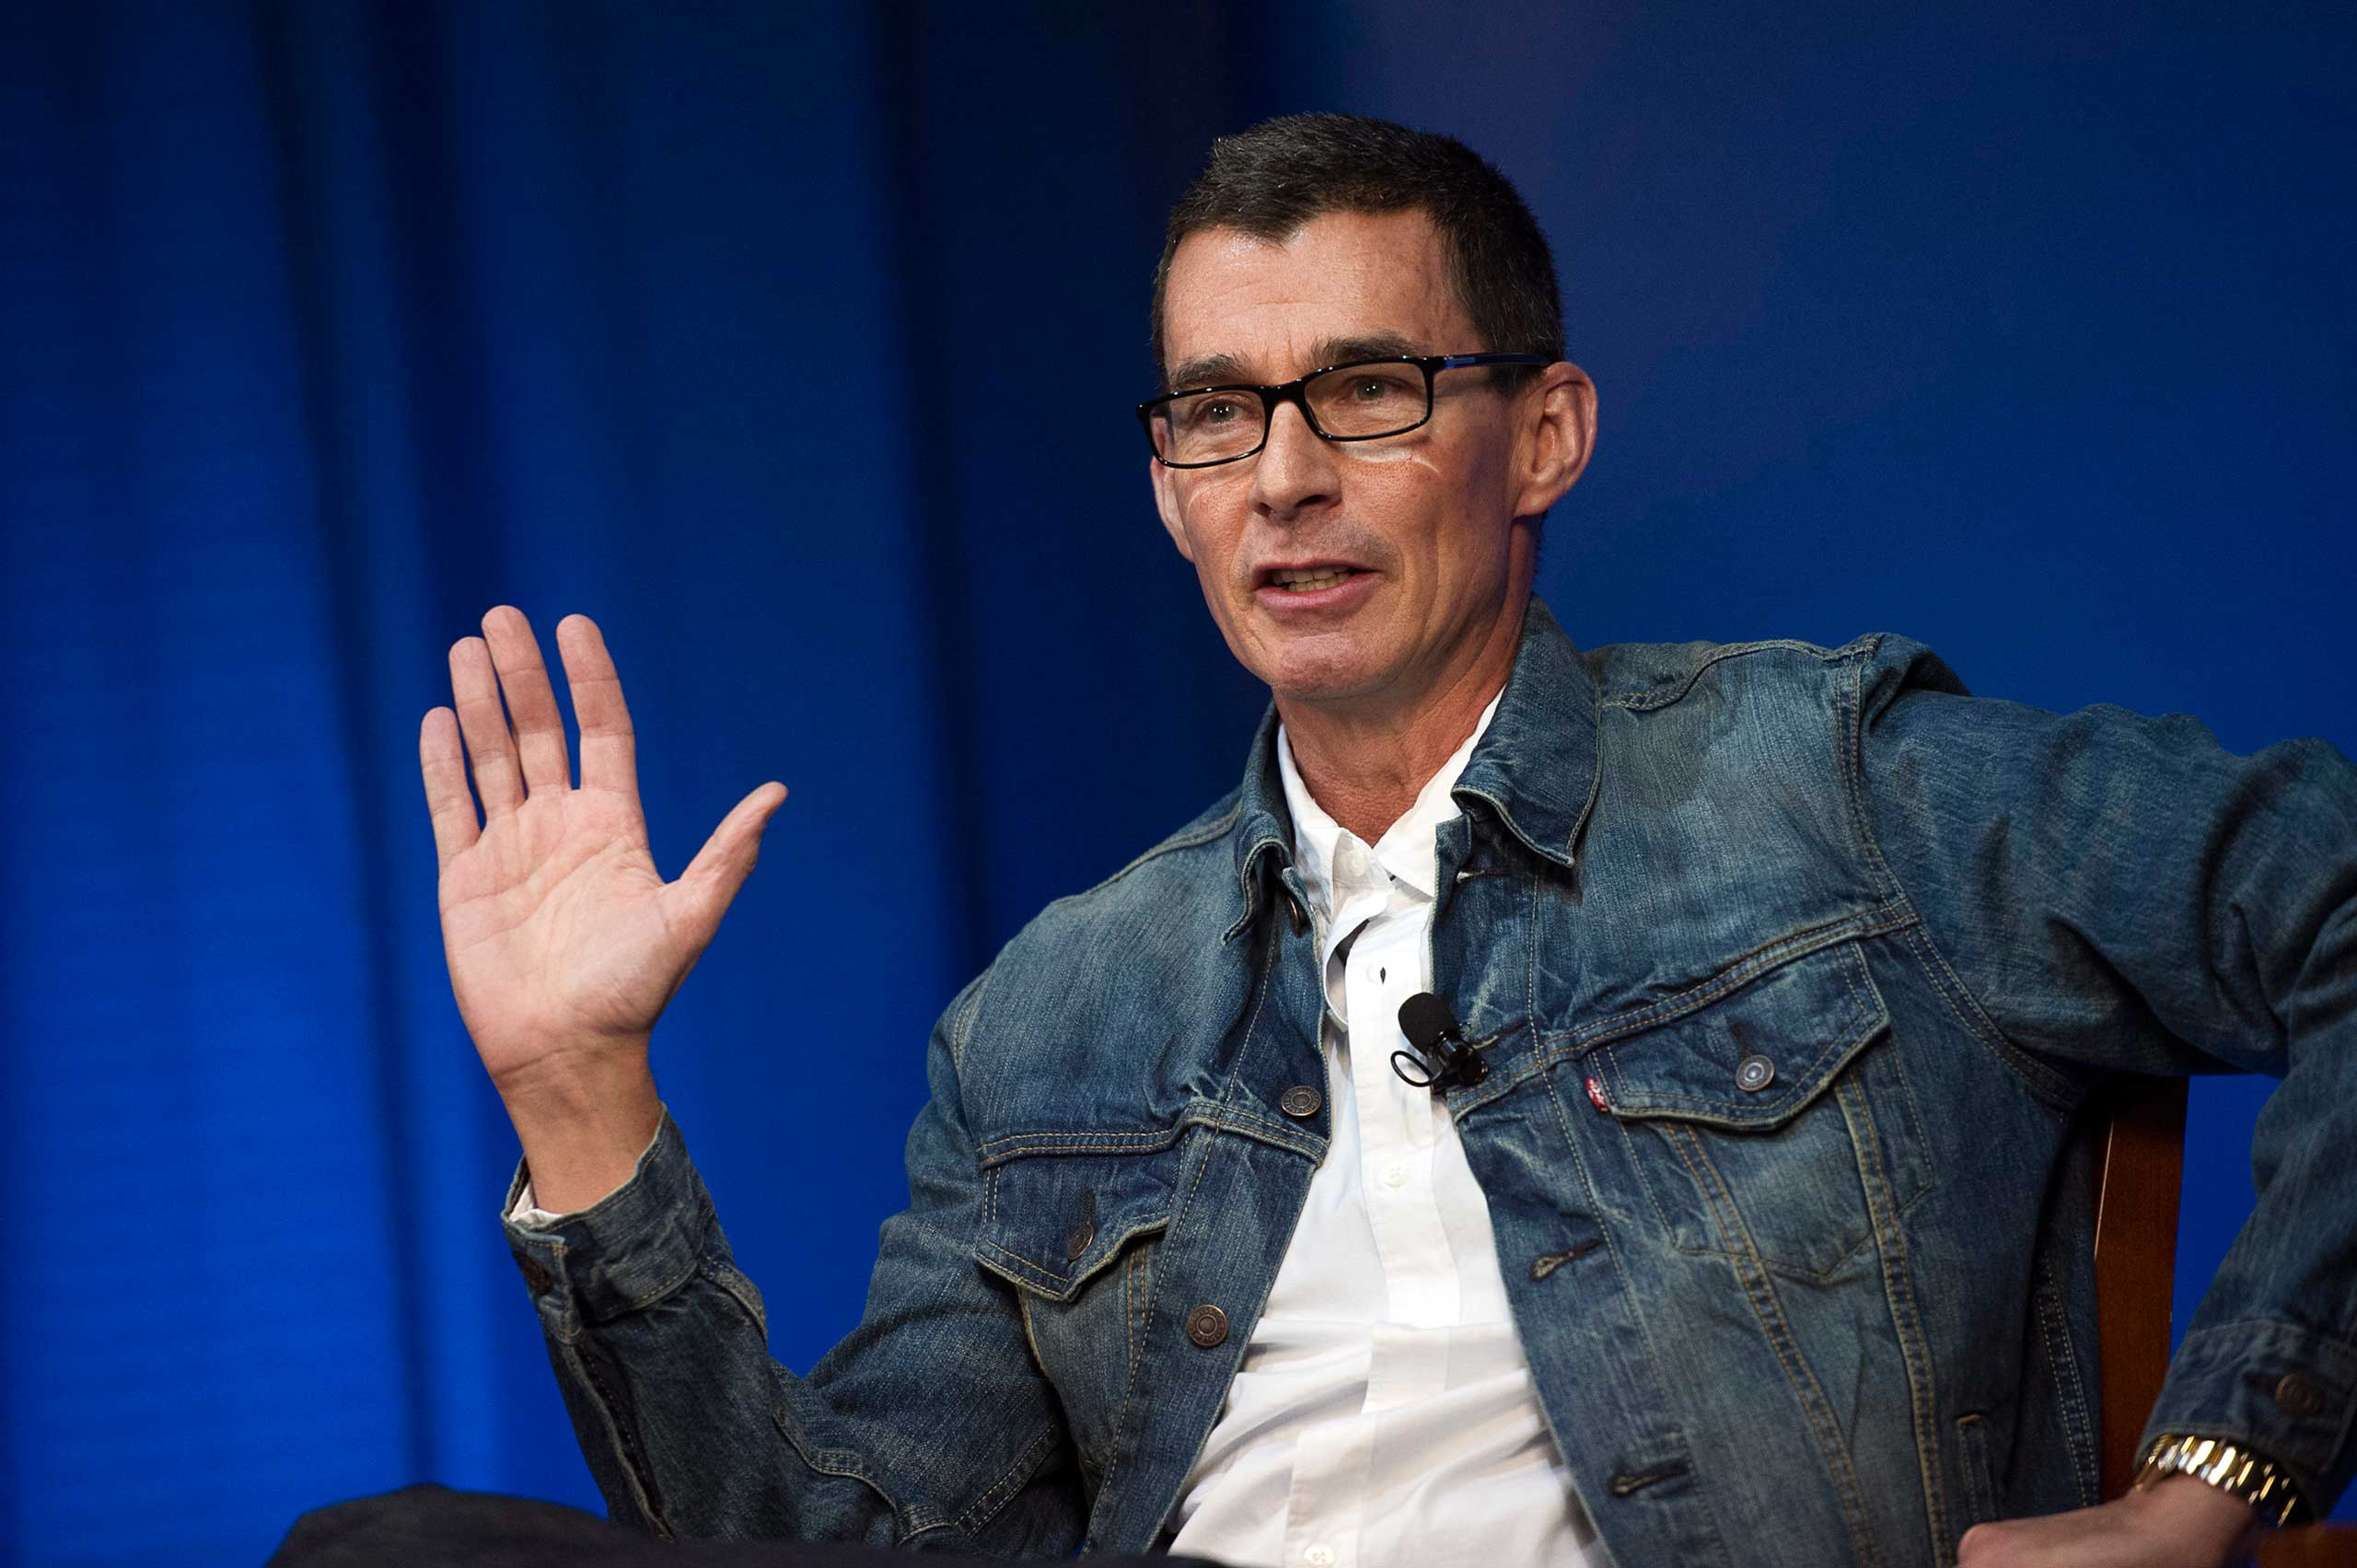 Chip Bergh, chief executive officer at Levis Strauss & Co., in 2013.